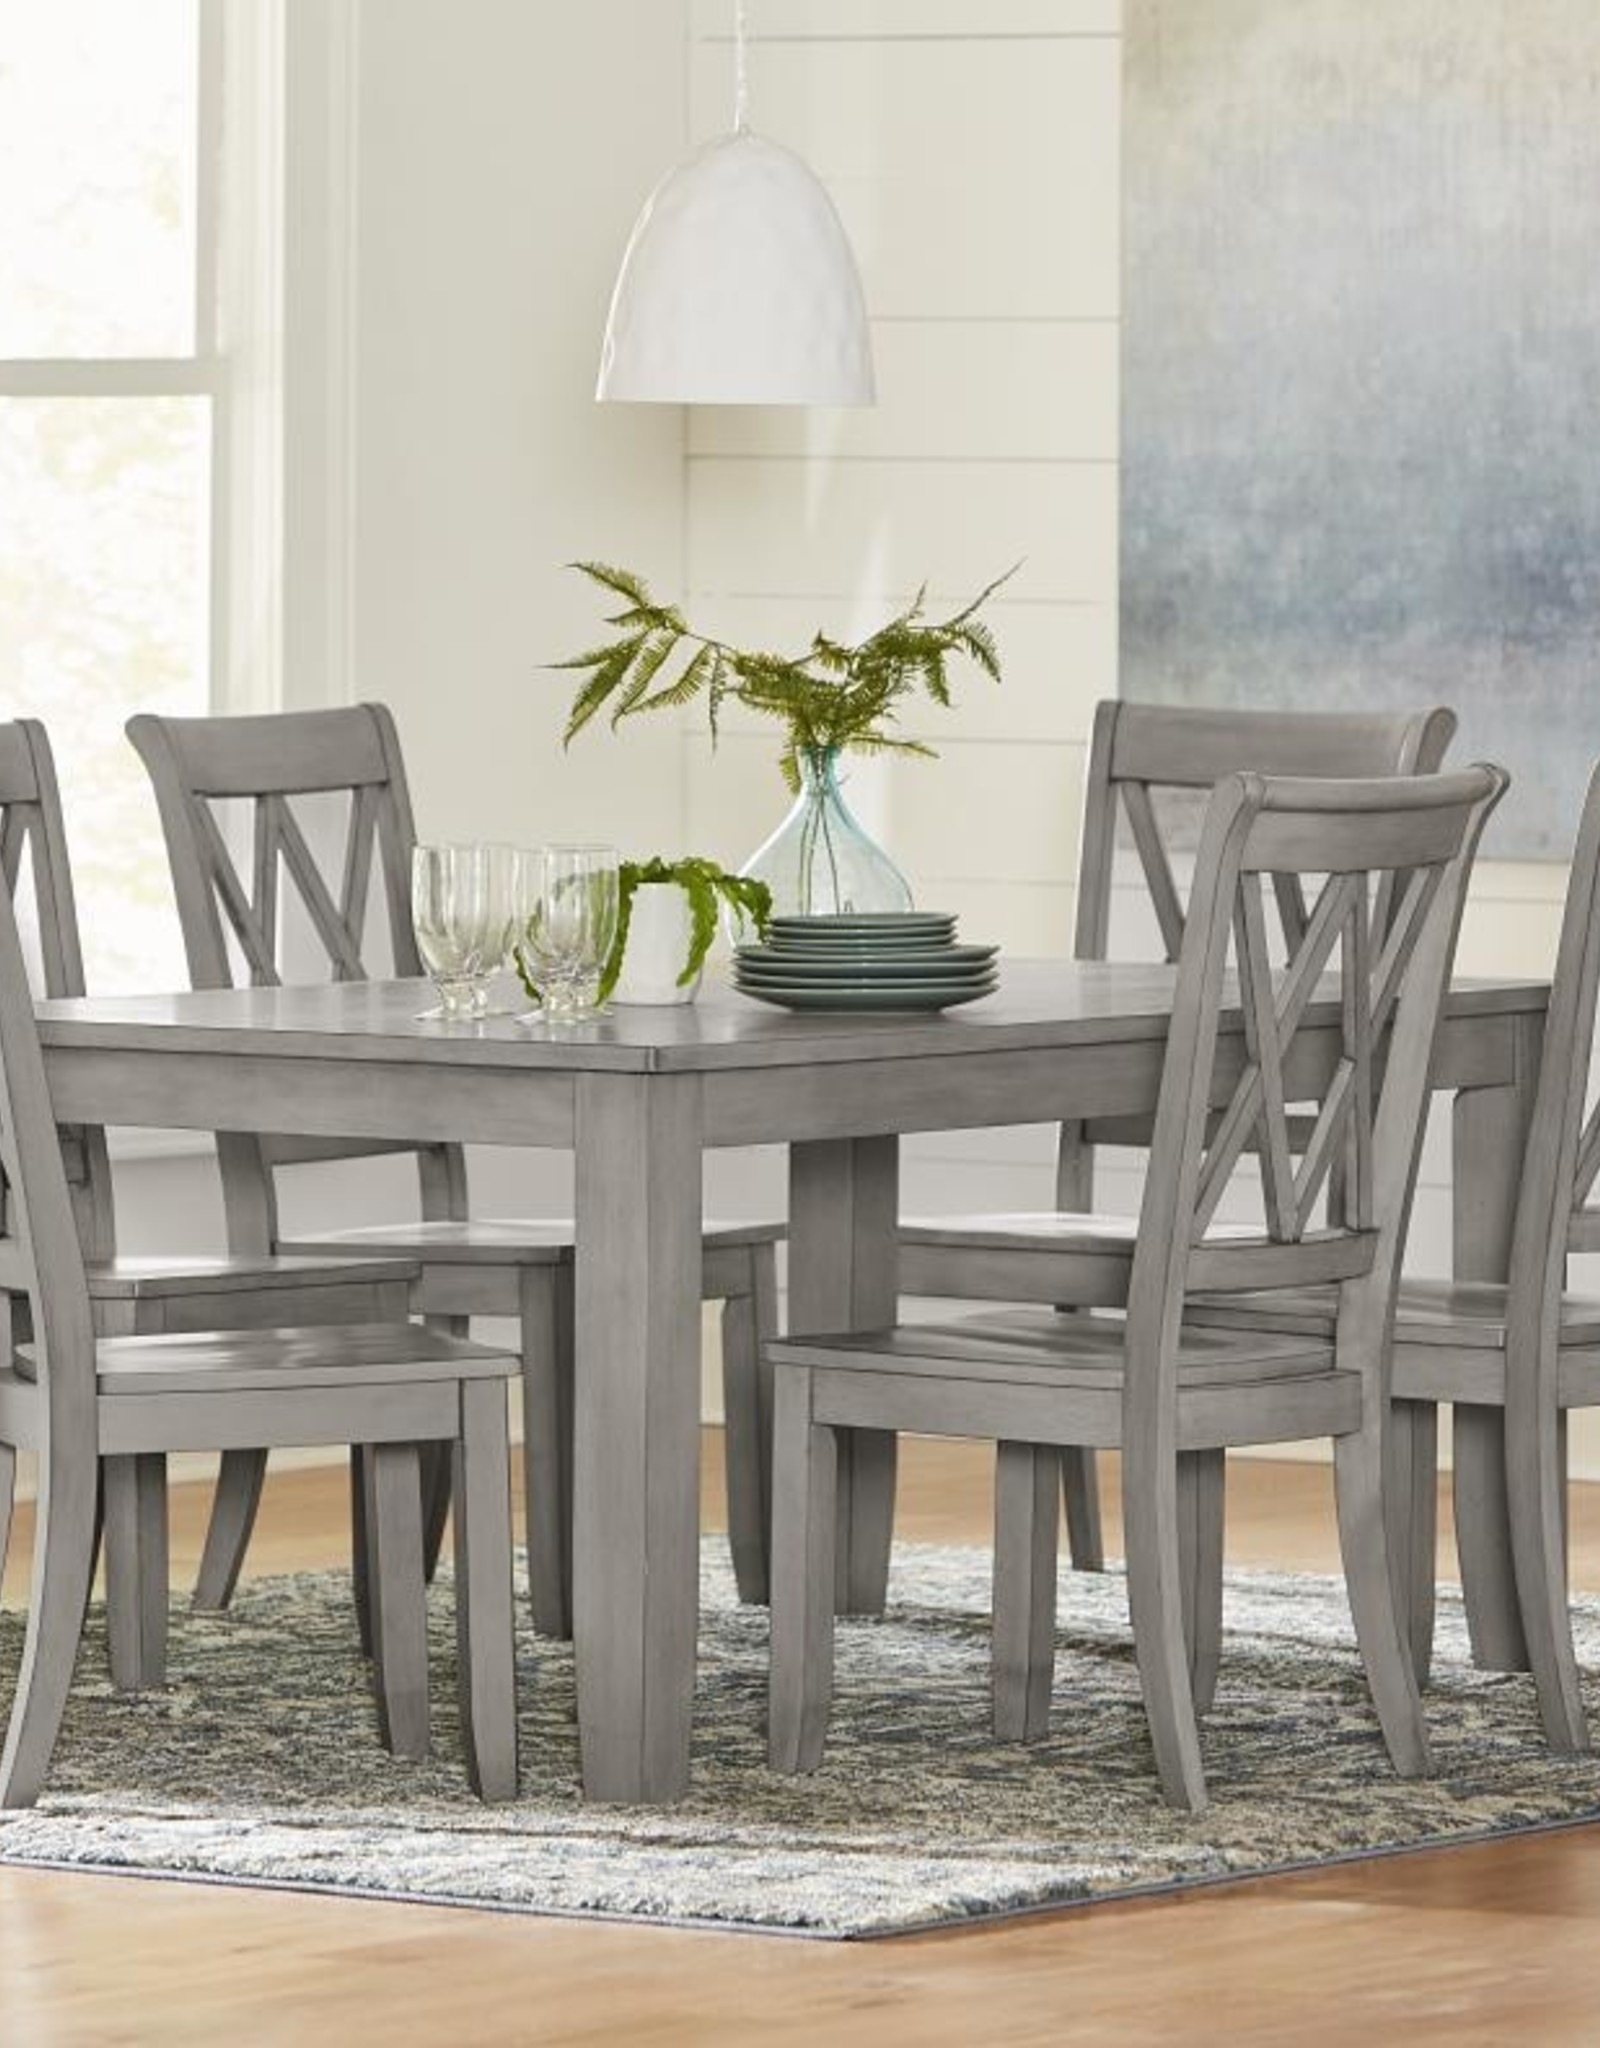 Baldwin Grey Dining Table w/ 6 Chairs - Bargain Box and Bunks